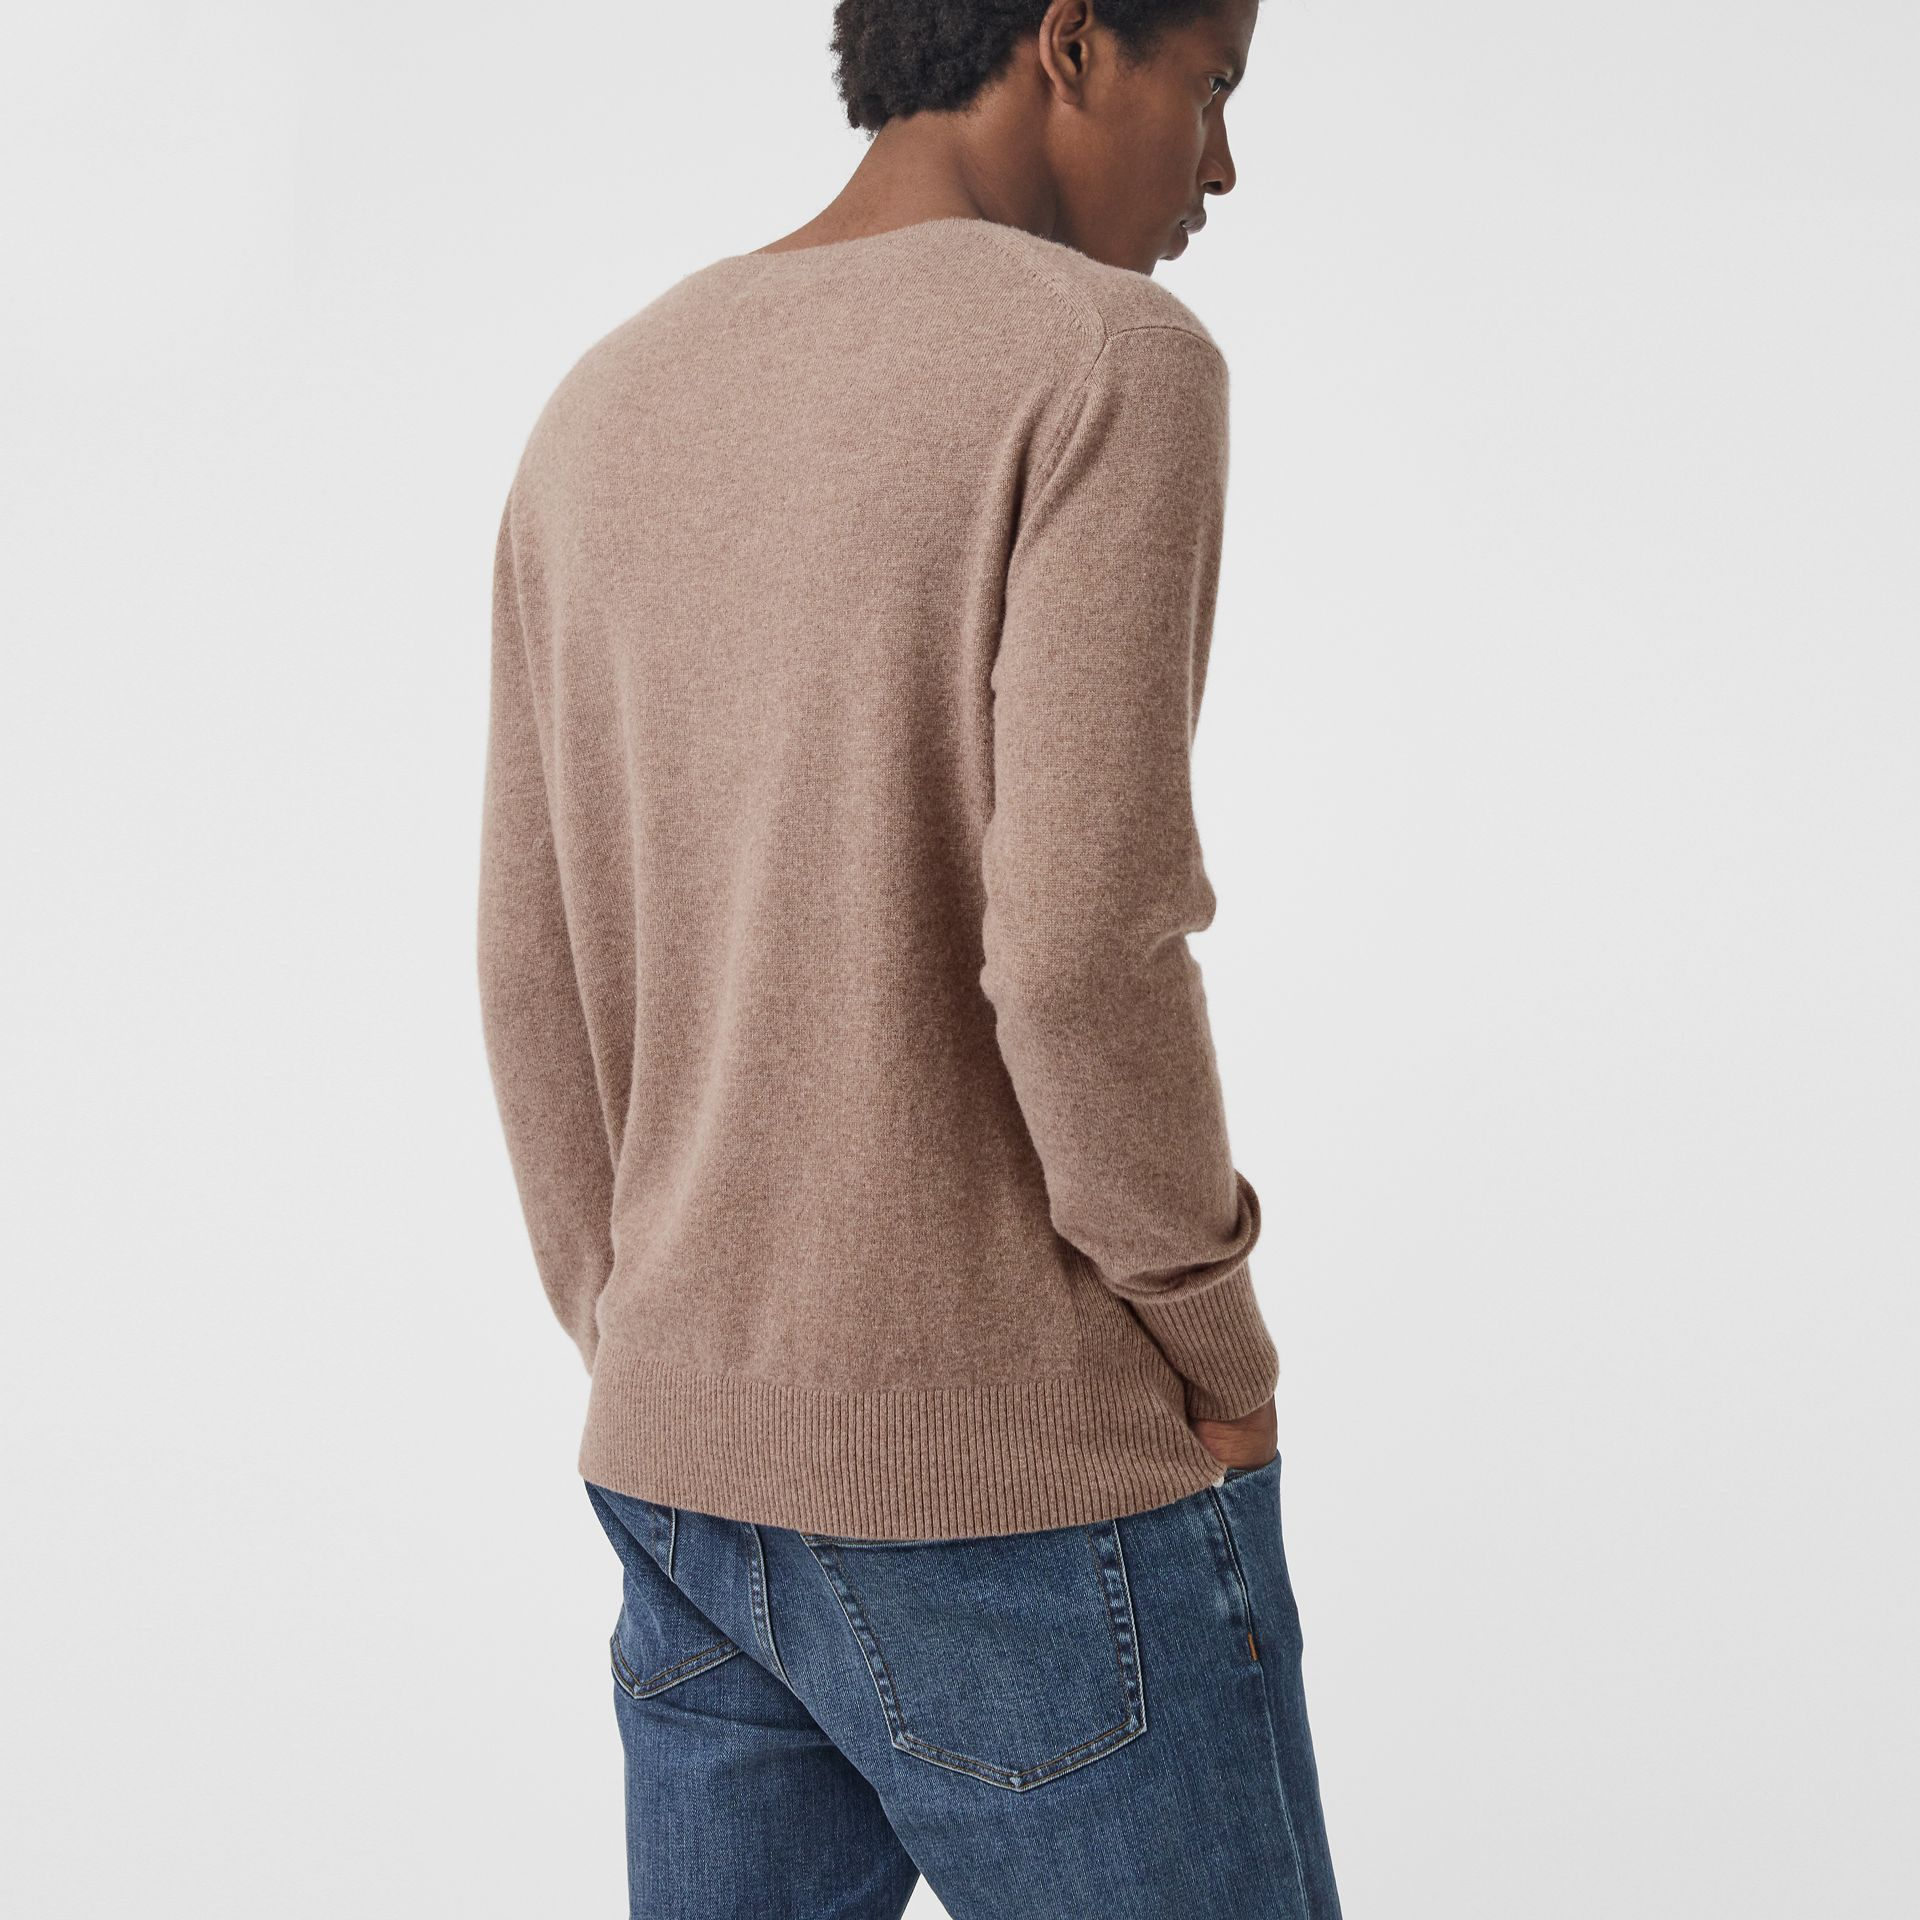 Embroidered Archive Logo Cashmere Sweater in Camel Melange - Men | Burberry Singapore - gallery image 2